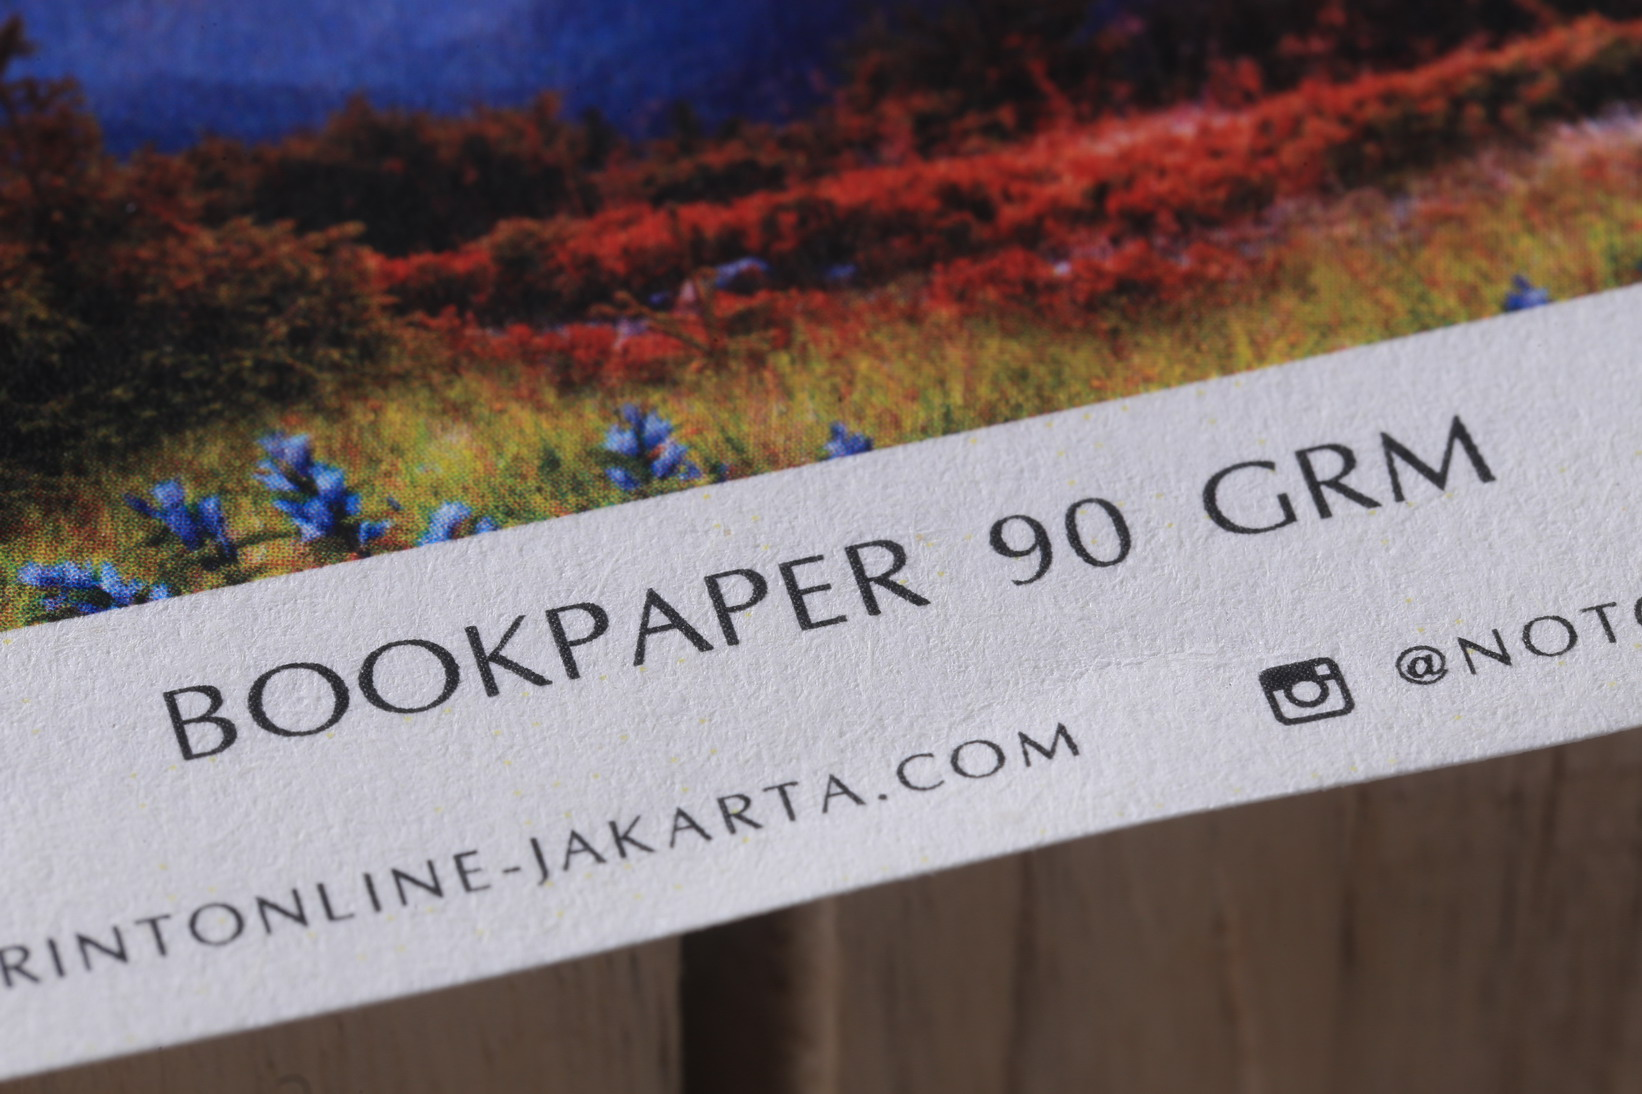 Bookpaper 90 grm